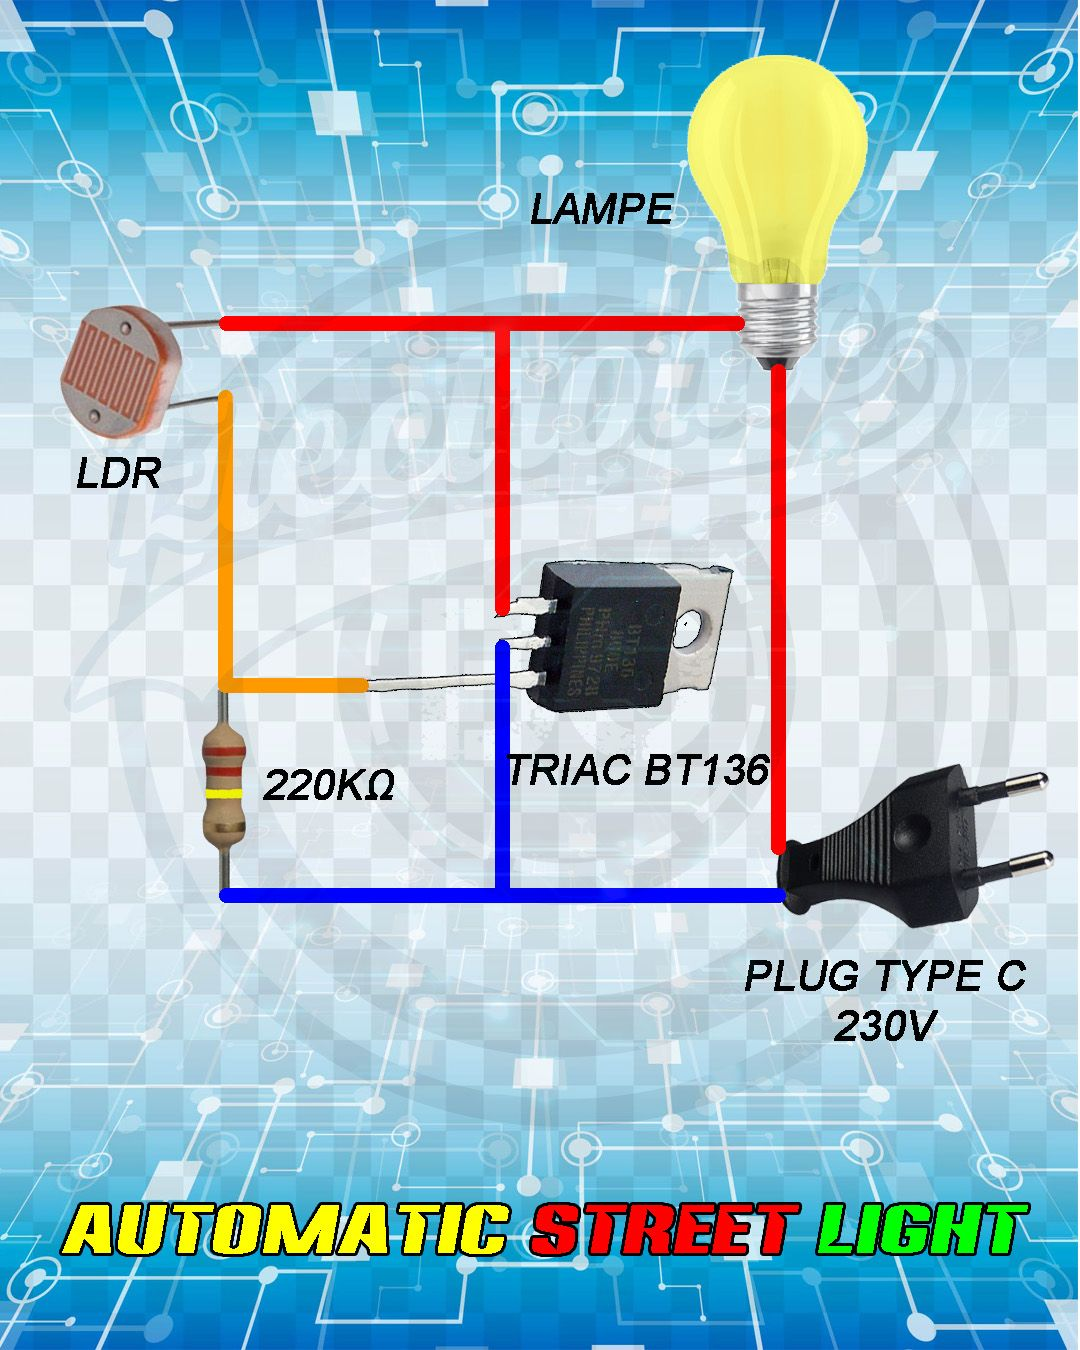 Automatic Street Light Circuit In 2020 Electronics Mini Projects Electronics Projects Diy Electronics Projects